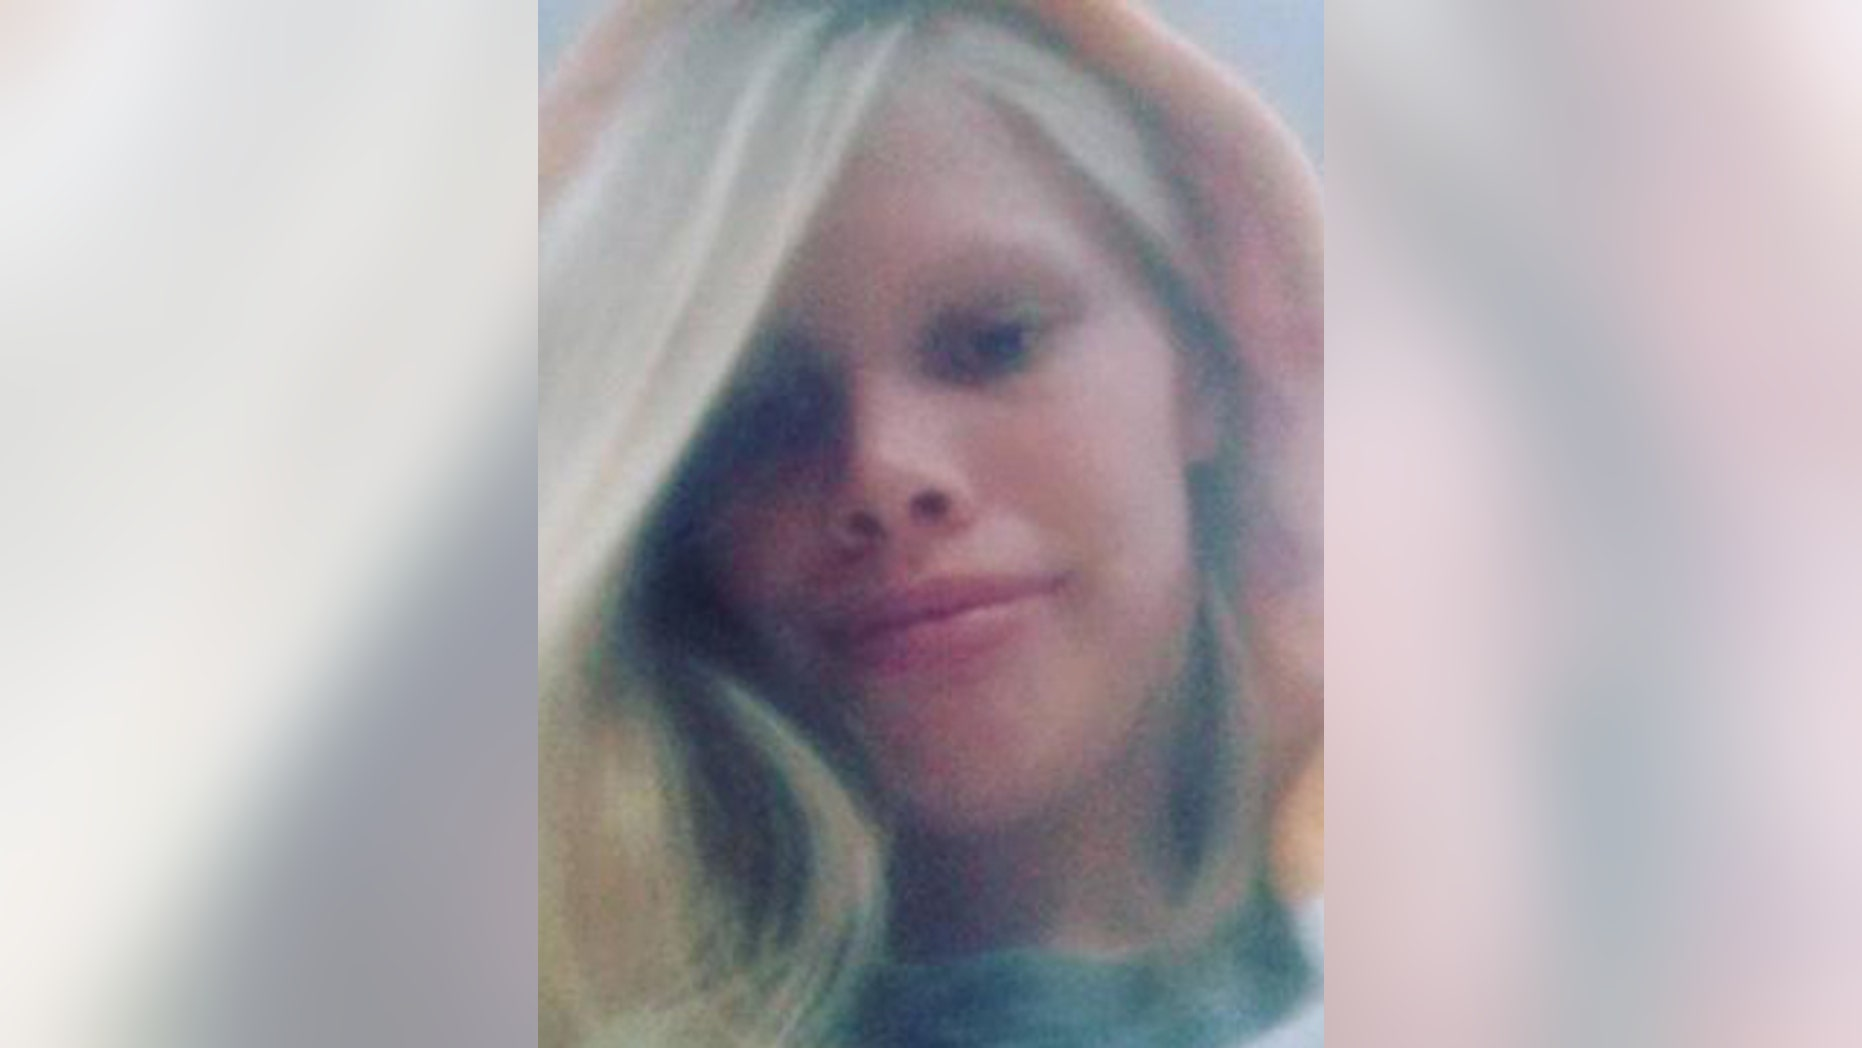 This undated photo shows 17-year-old Katlynn Goodwill Yost, who is missing from a home where three people were found dead Sept. 24, 2016